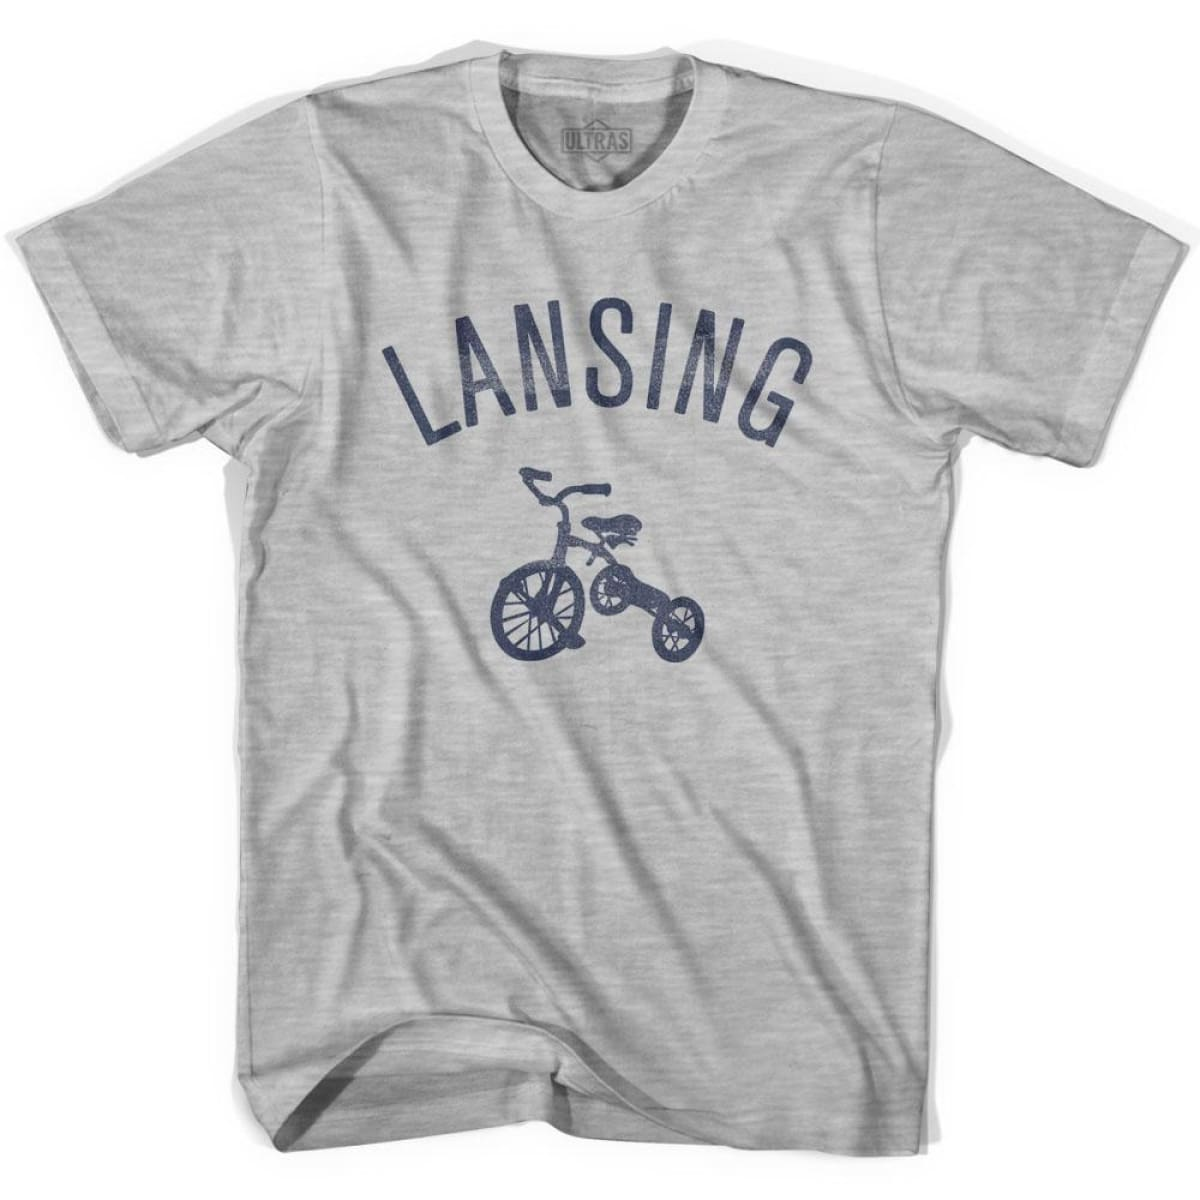 Lansing City Tricycle Youth Cotton T-shirt - Tricycle City